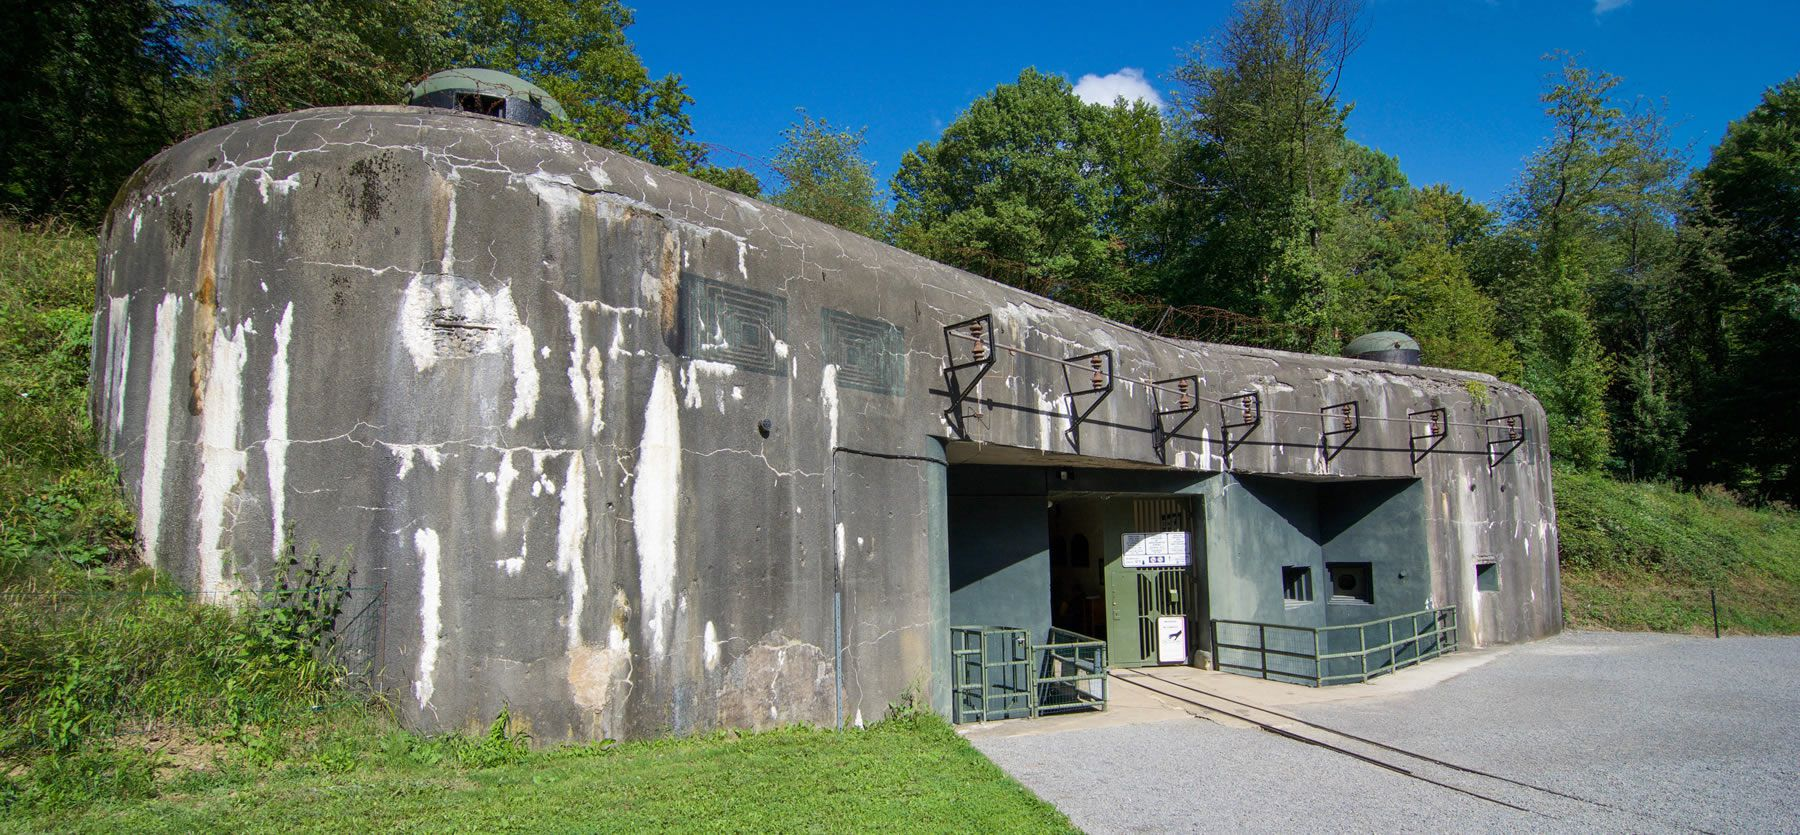 Maginot Line France